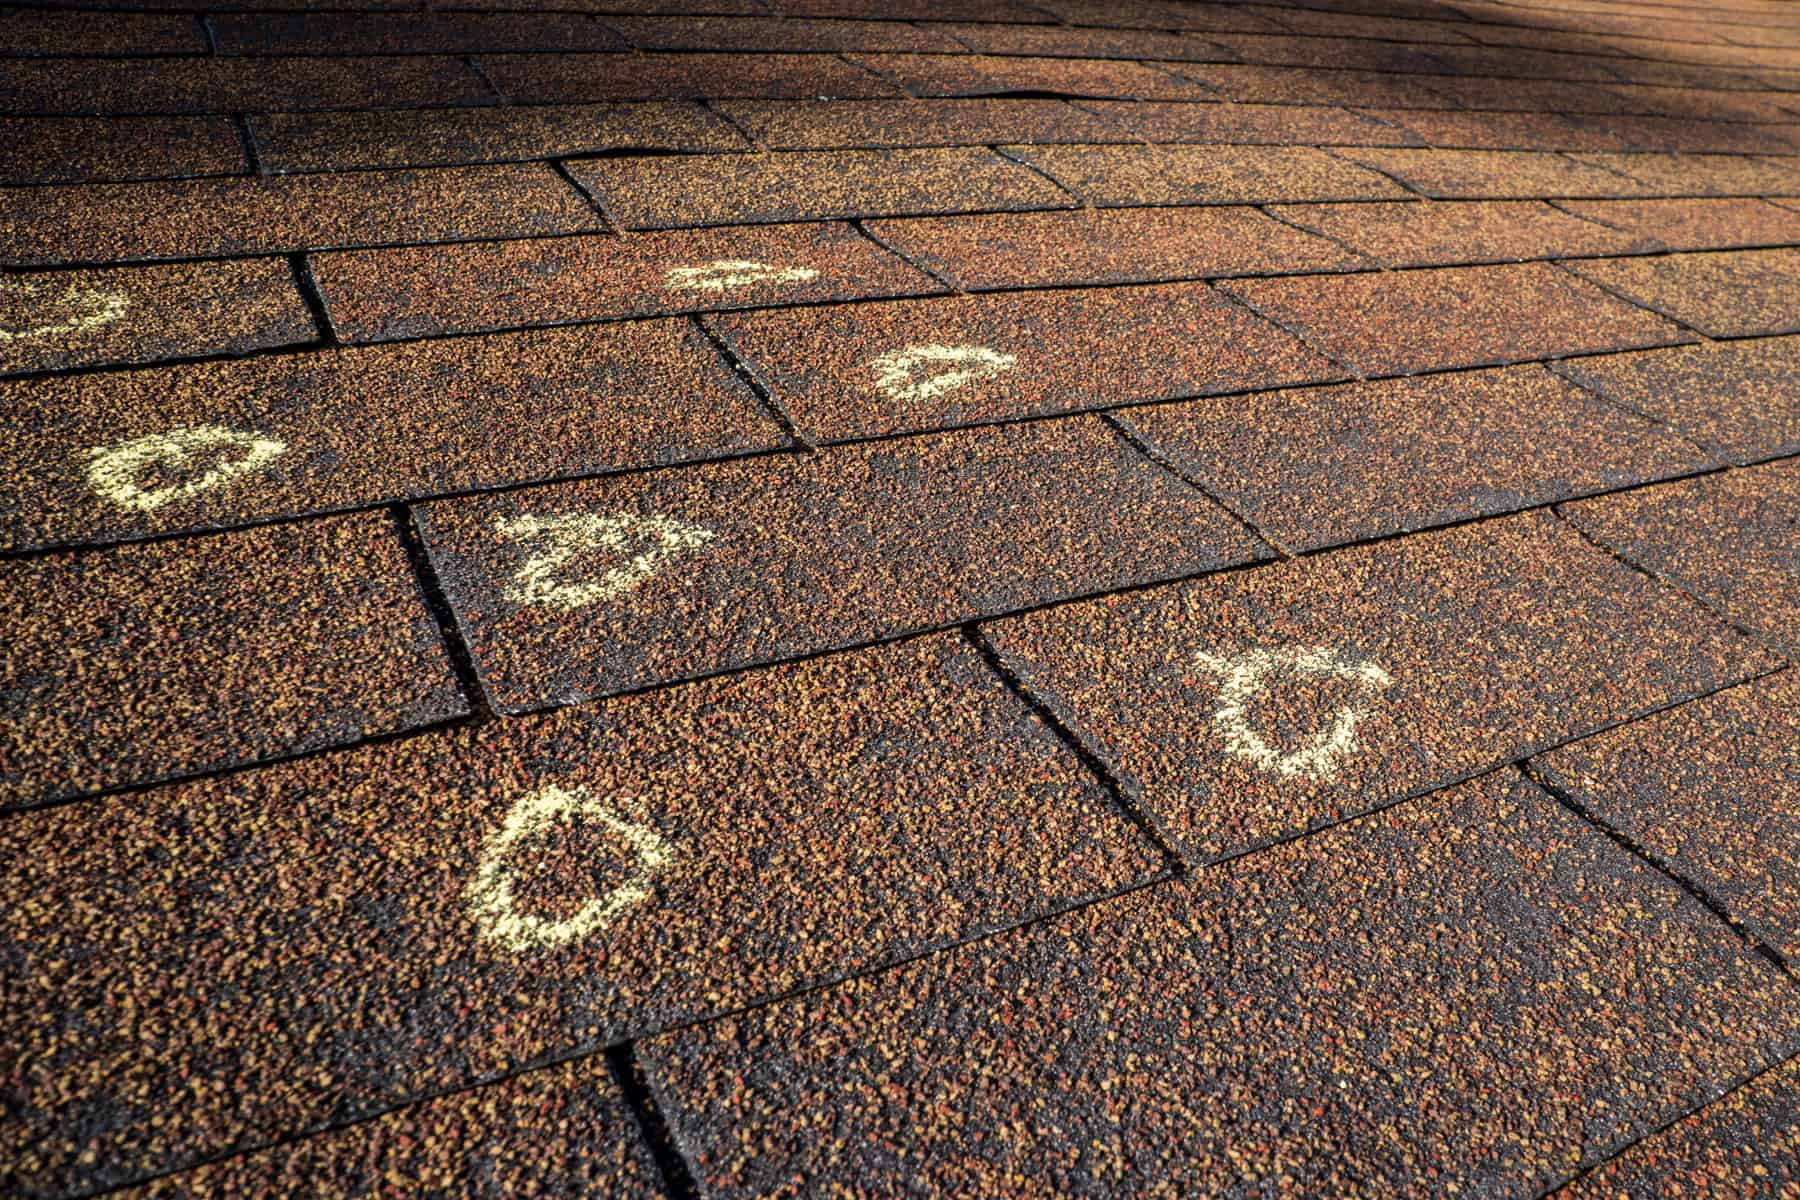 replacing roof shingles